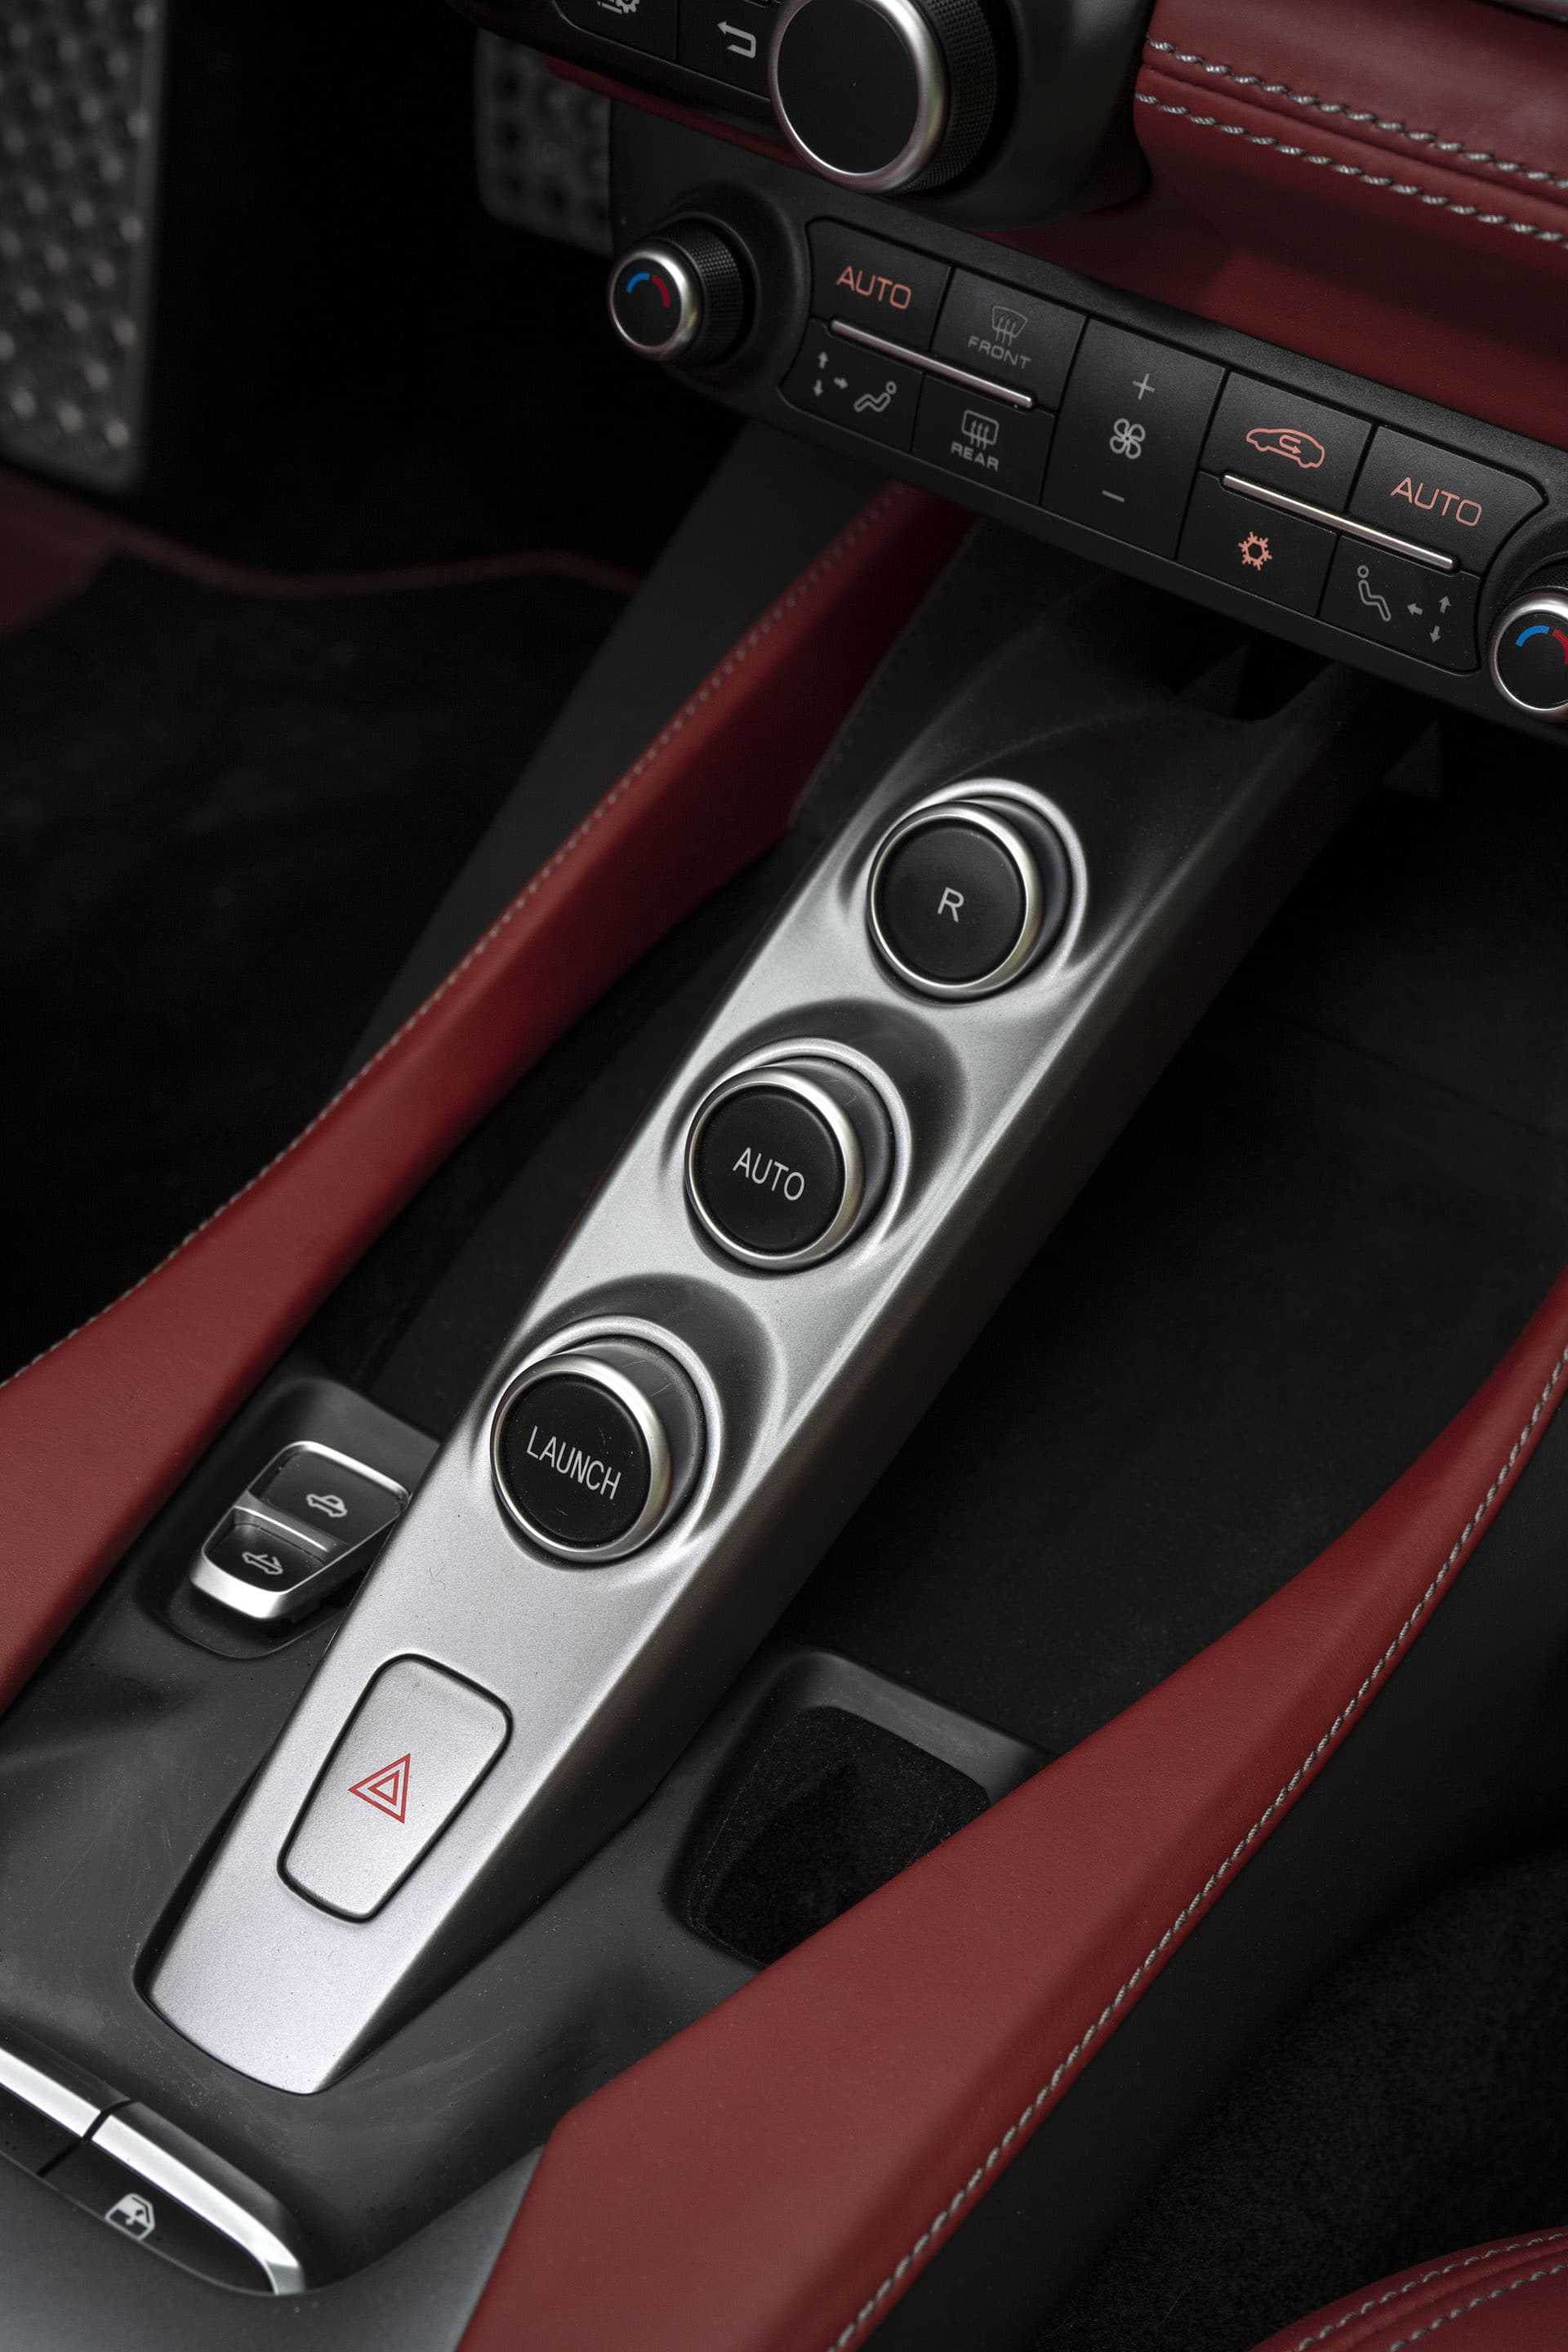 In the center console is a ramp for the gearbox selectors and next to that the controls for the automatic metal roof.